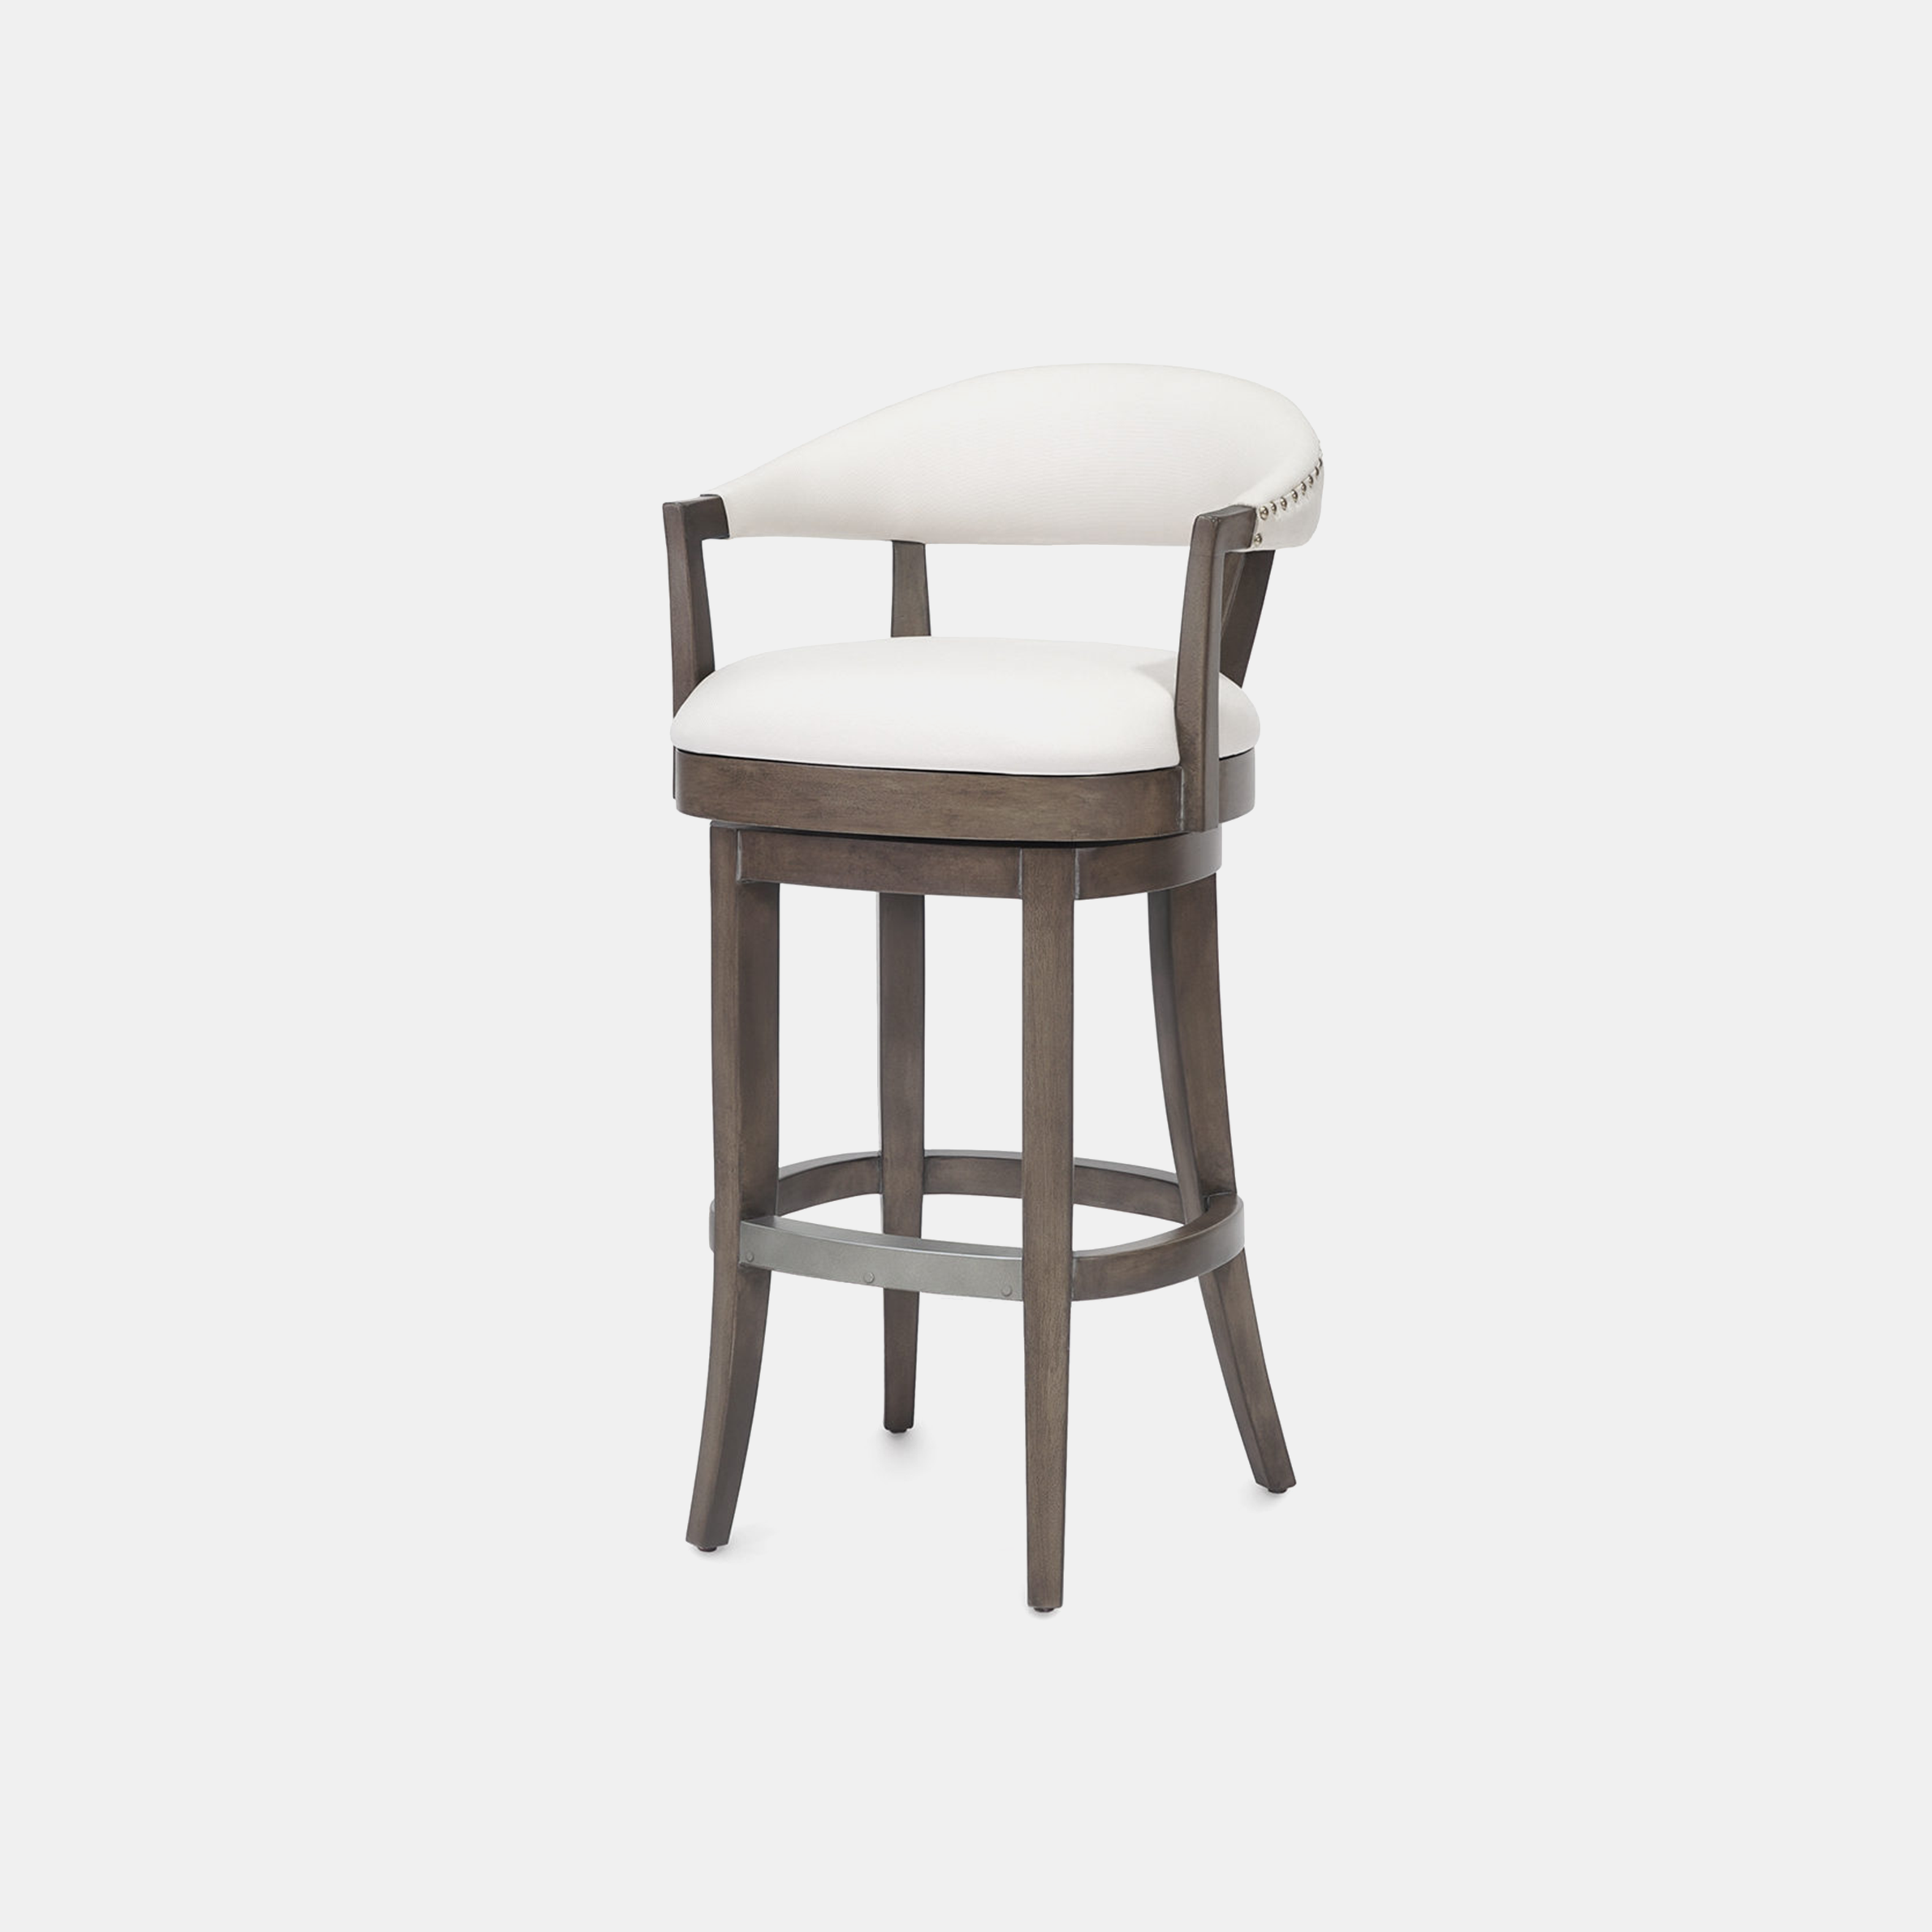 "Menlo Bar Stool  21.75""w x 21.75""d x 41""h Available in 30"" bar stool and 24"" counter stool. SKU774PLK"